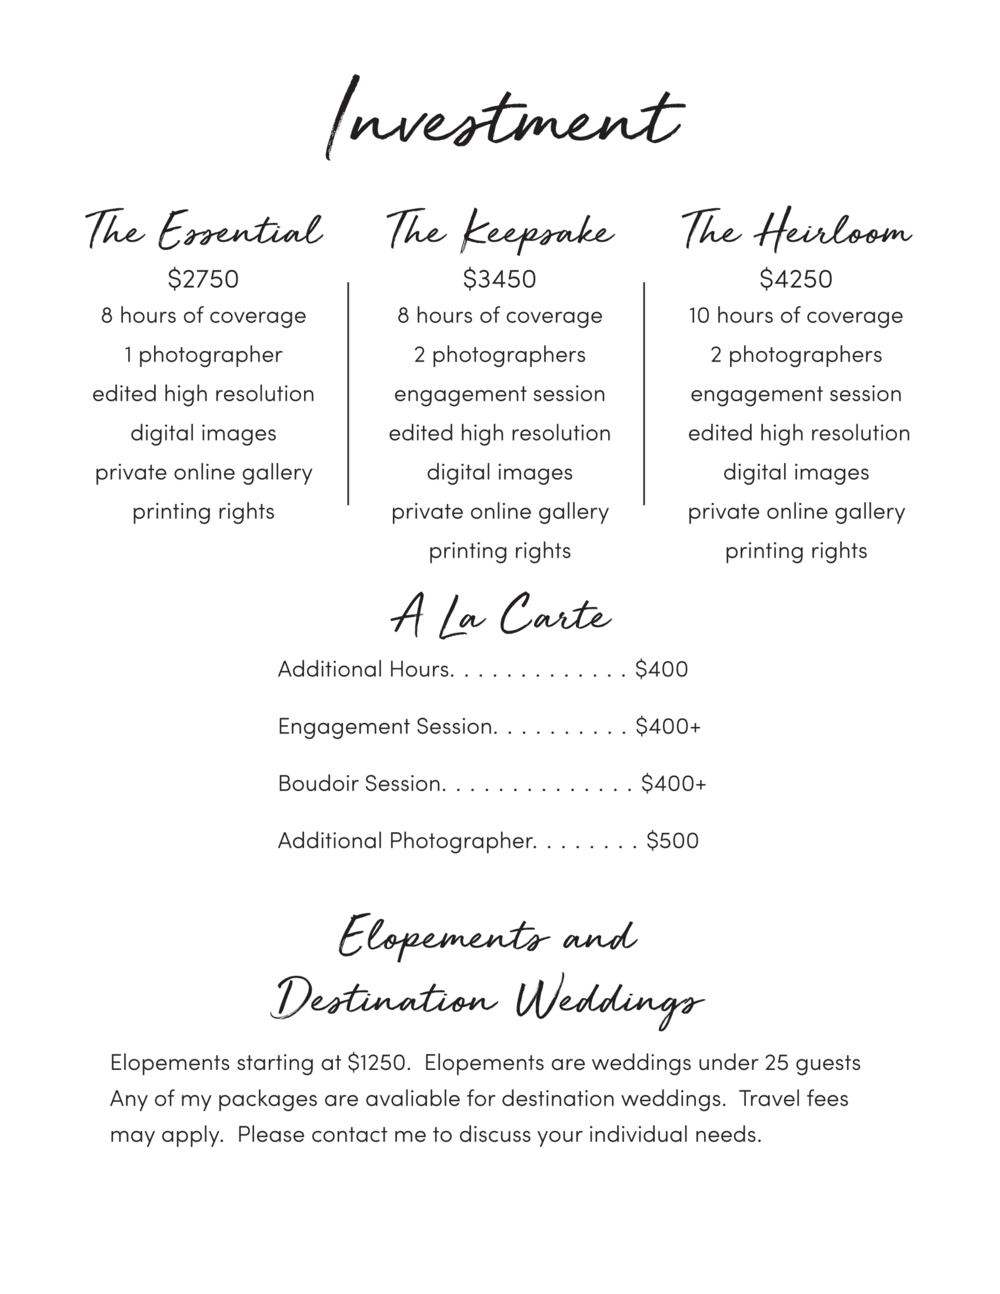 Hanna Walkowaik Wedding Pricing Guide 2020-2.png